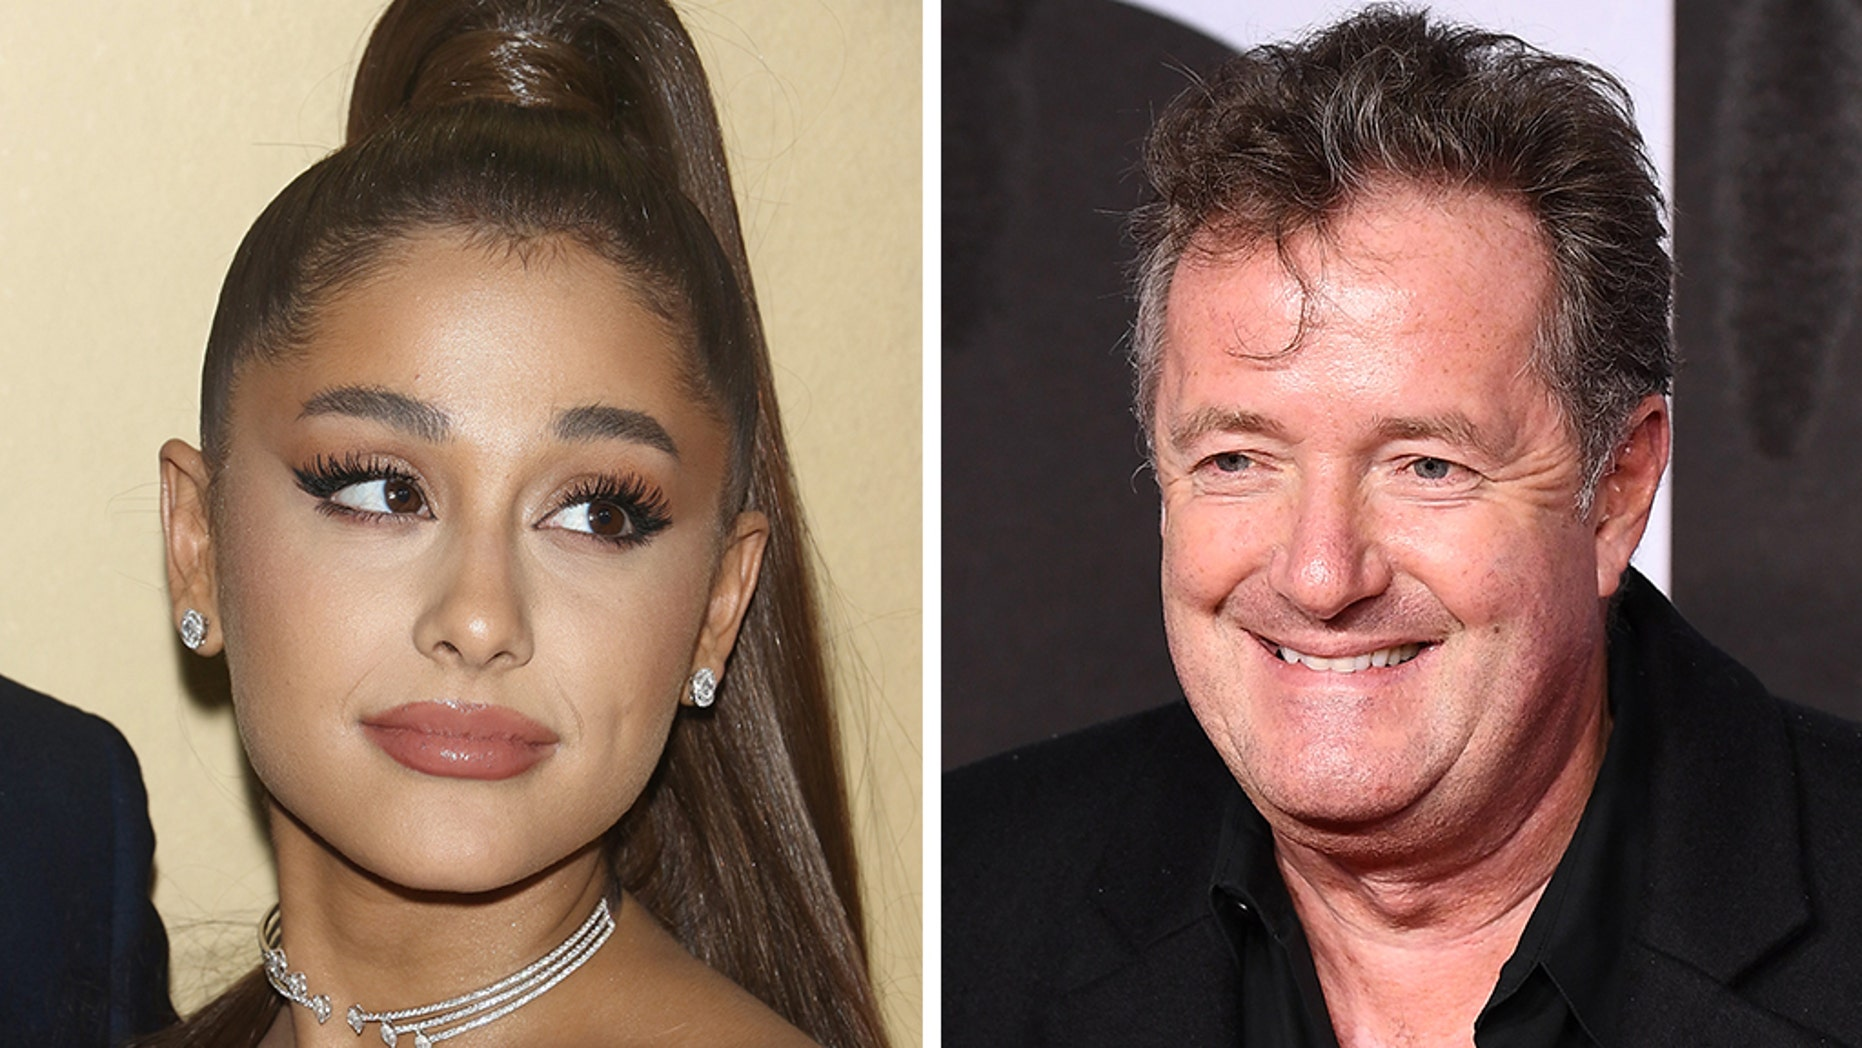 Ariana Grande & Piers Morgan End Their Feud - See Their Tweets